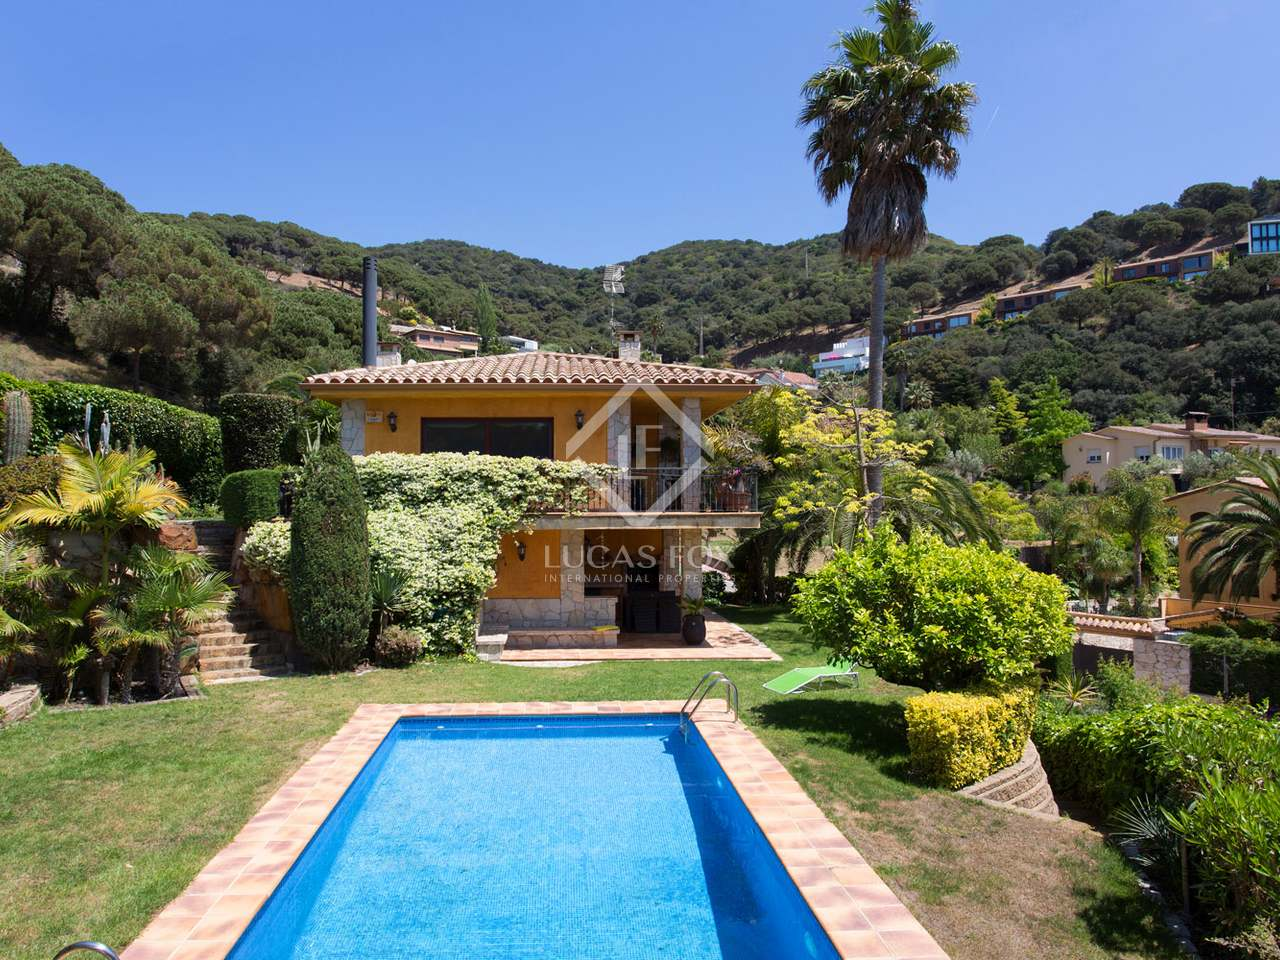 5 Bedroom Villa With Garden And Pool For Sale In Cabrils